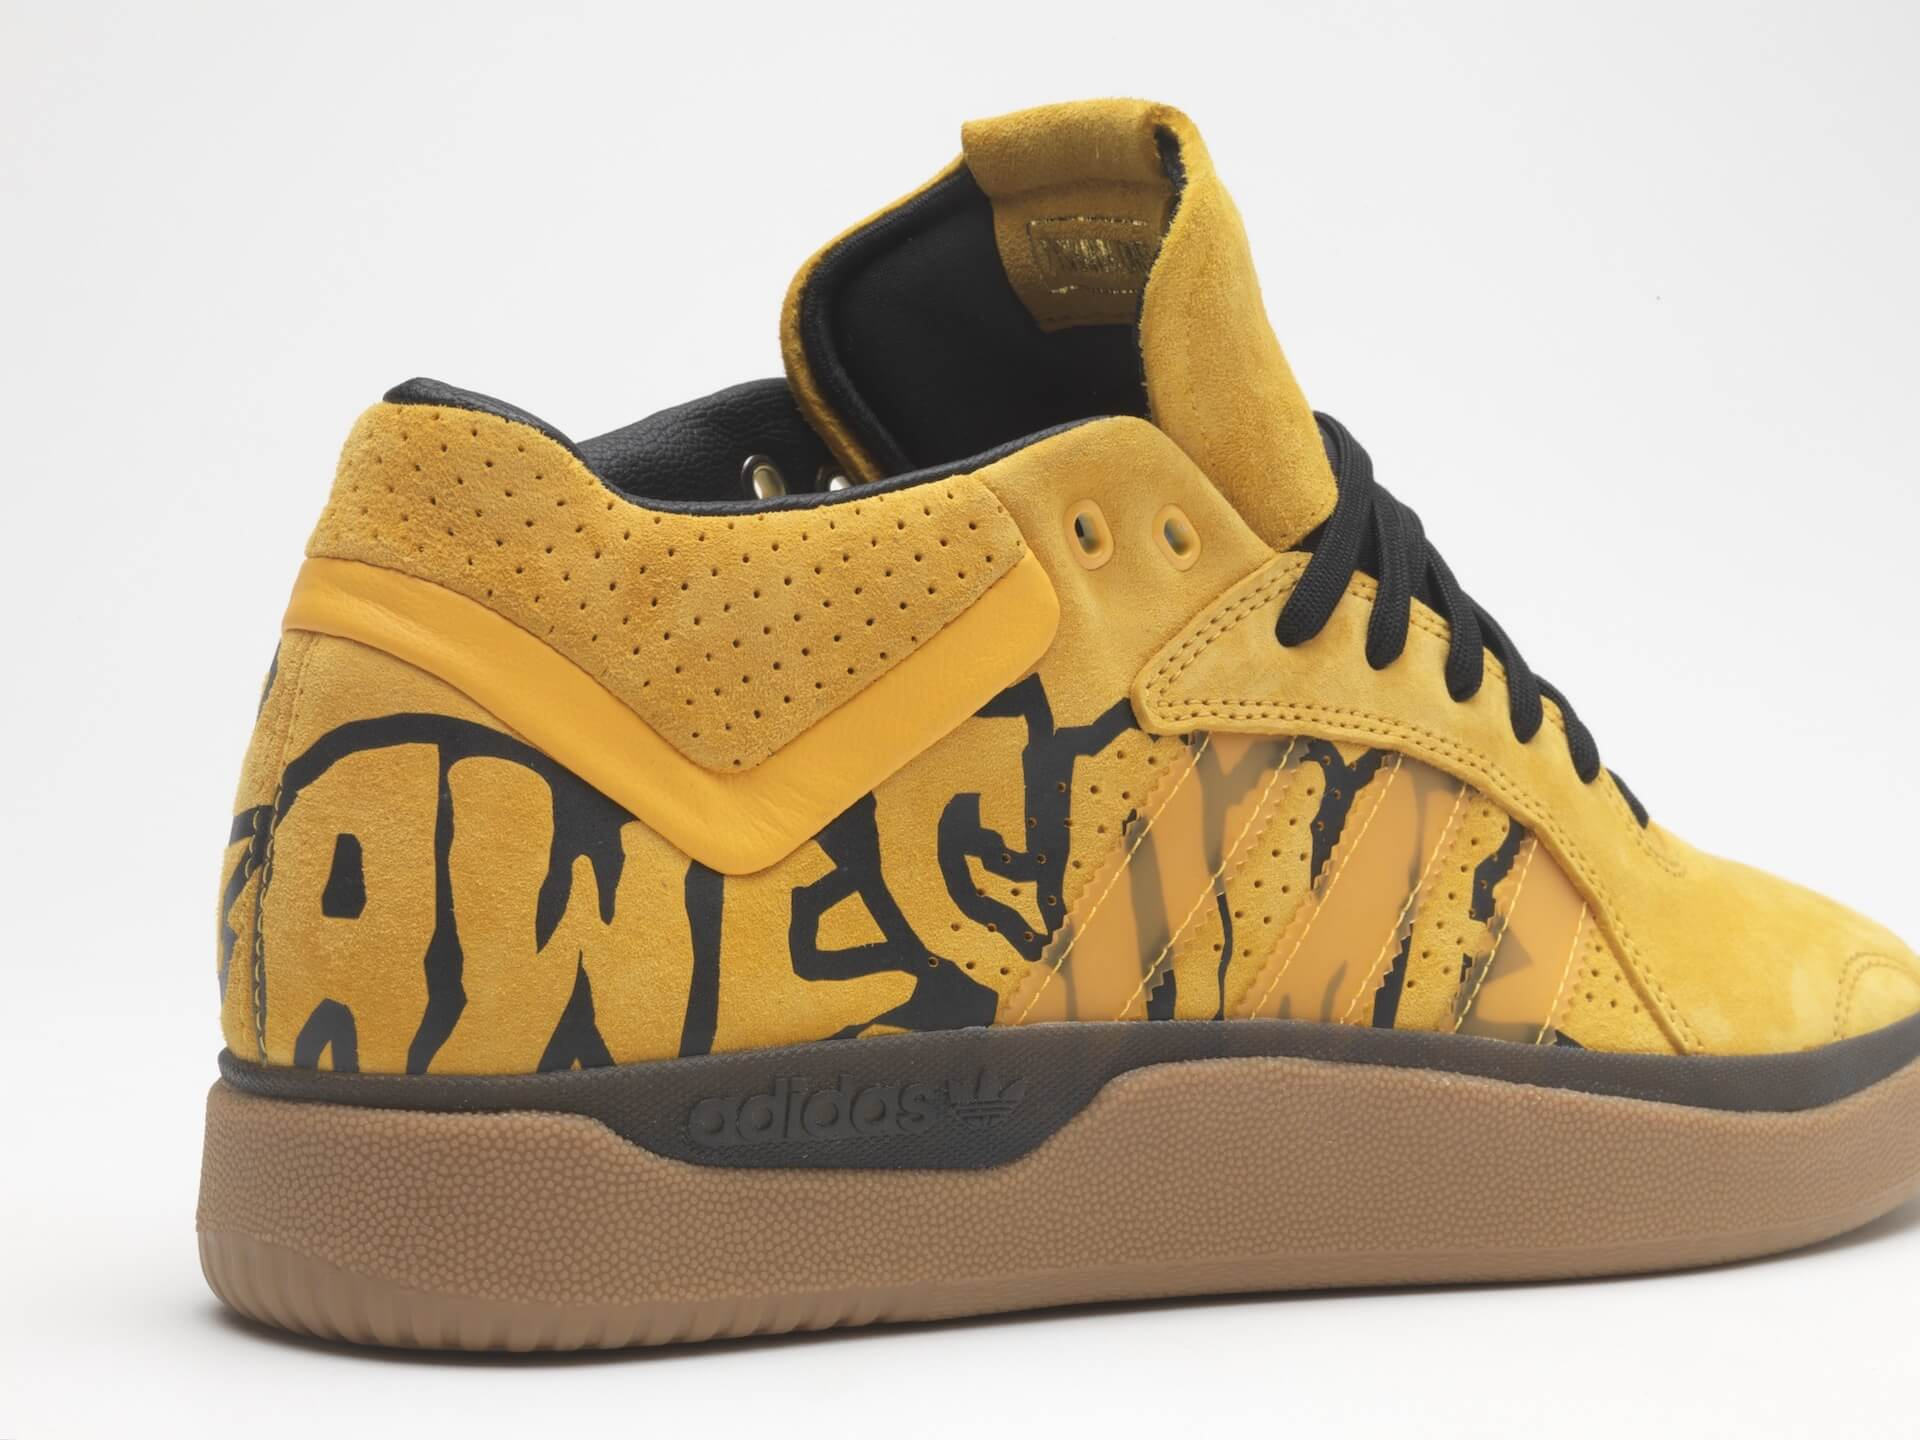 Tyshawn JonesとFUCKING AWESOMEのコラボスニーカー『TYSHAWN』がadidas Skateboardingより発売! lf200708_tyshawnjones_fuckingawesome_04